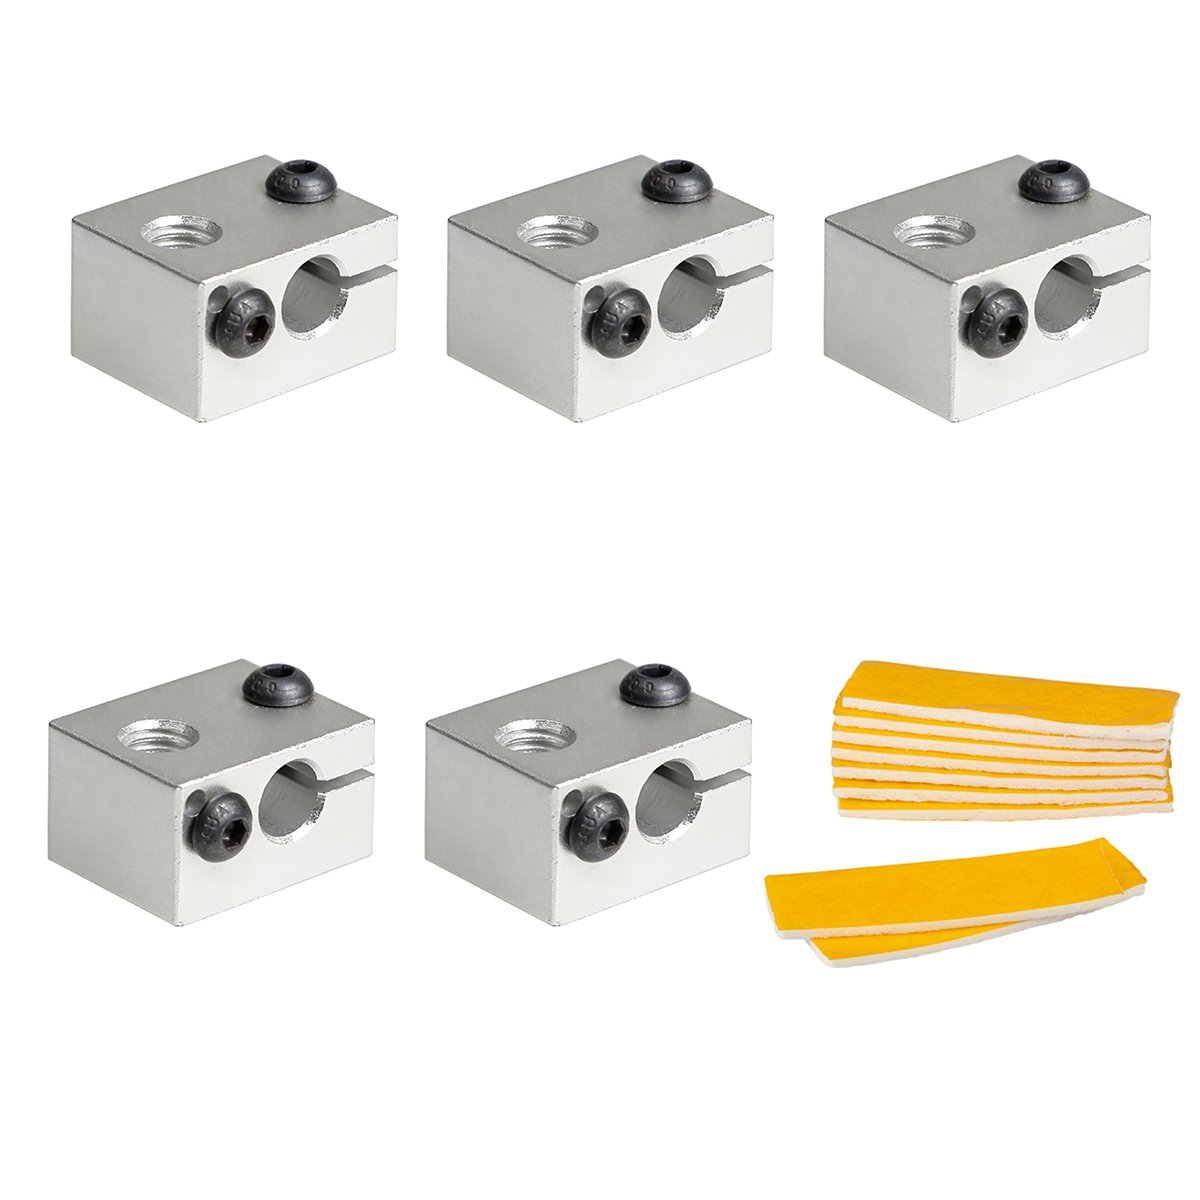 V6 Aluminum Extruder Hotend Nozzle Throat Heater Block with 10pcs 2mm Thick Heat-Insulated Cotton, for Makerbot 3D Printer